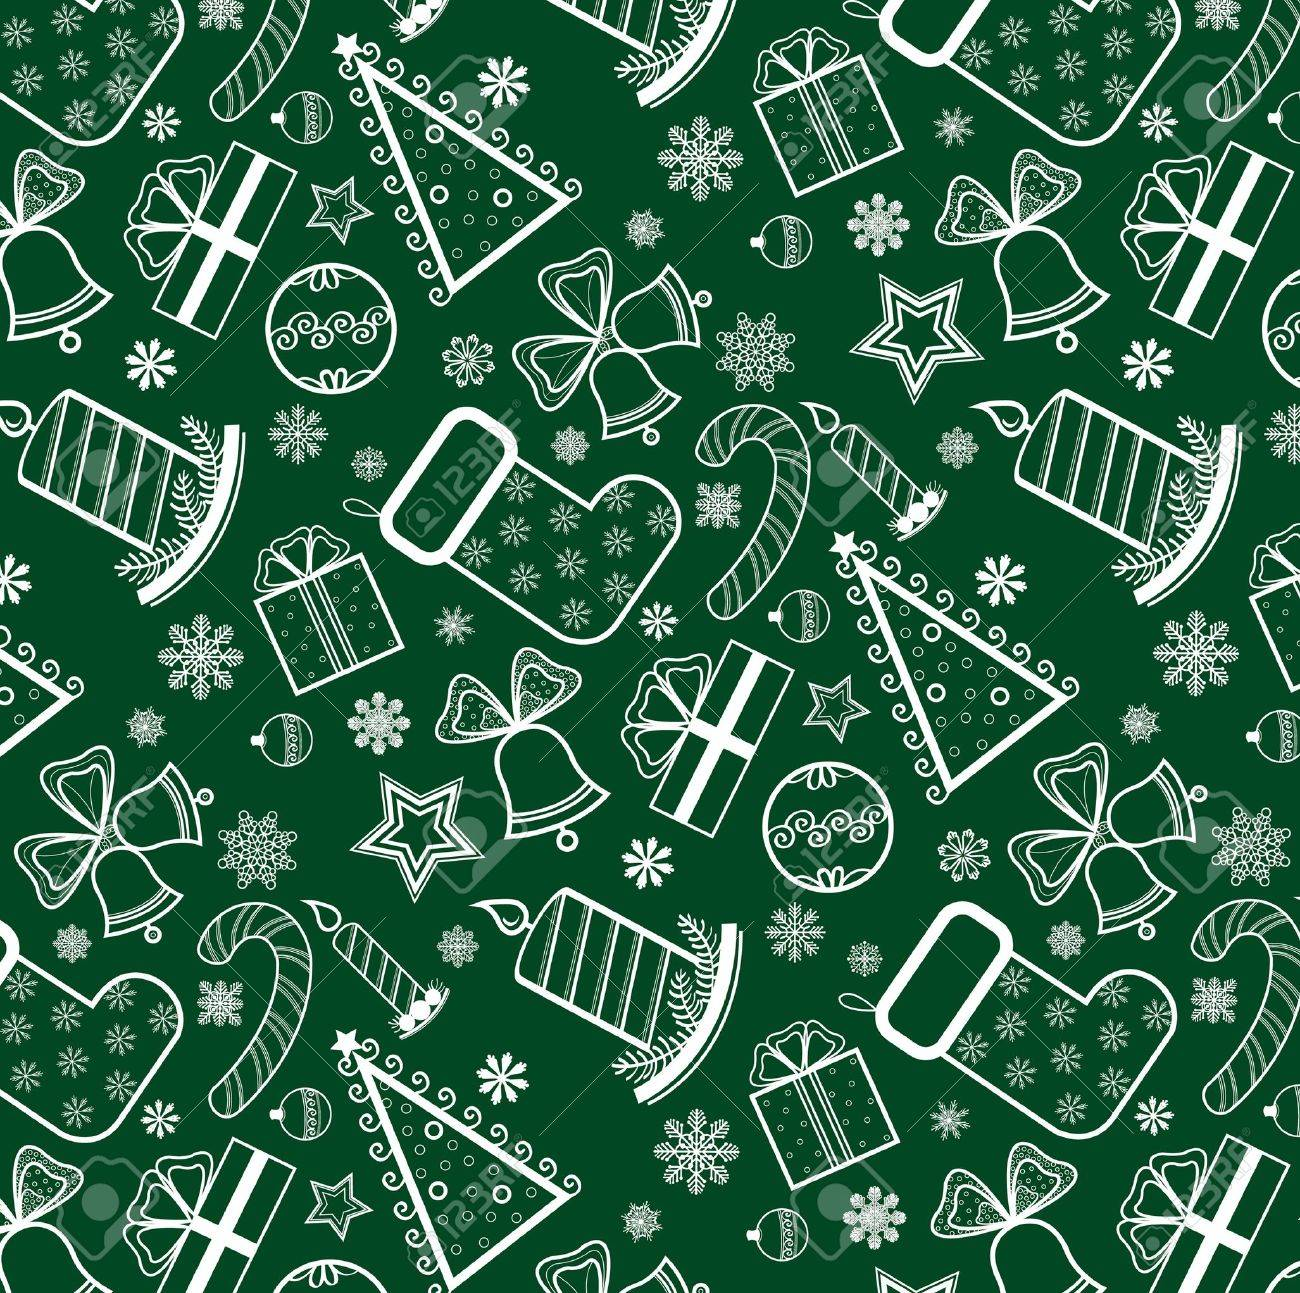 Green Christmas wallpaper with new year theme Stock Vector - 11209965